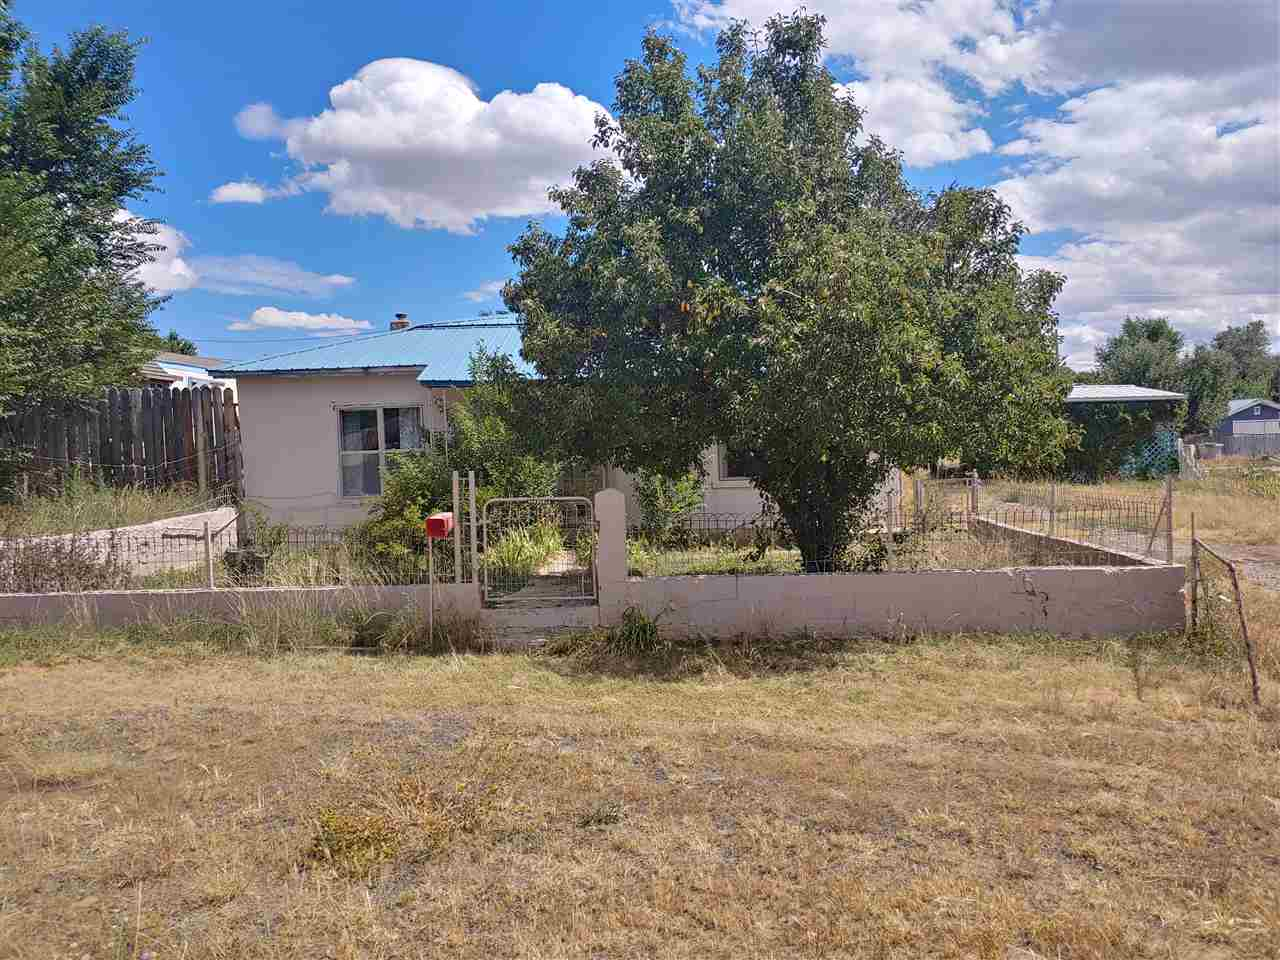 806 Cimarron Ave, Springer, NM 87447